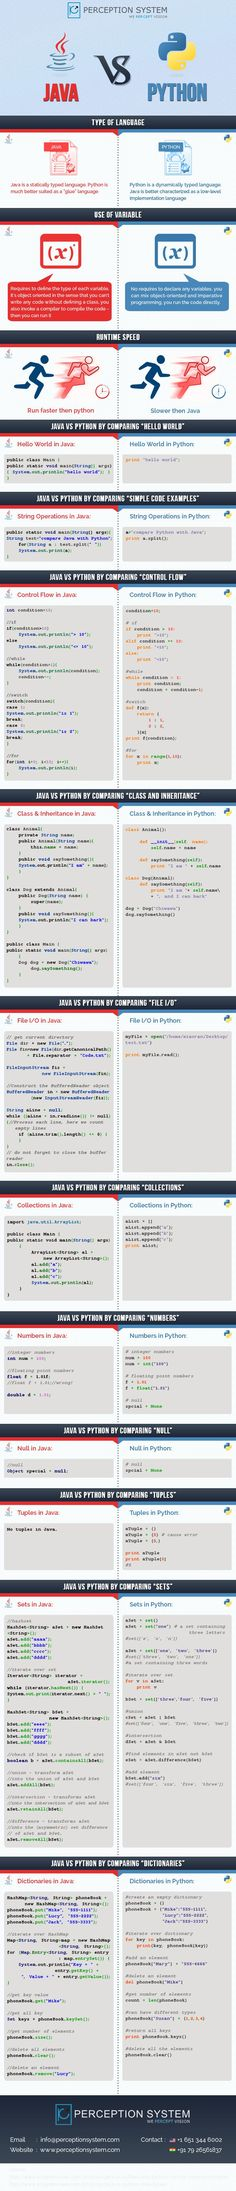 Java Vs. Python - Which Programming Language is More Productive? Tailor-made IT Systems. Opus Online.